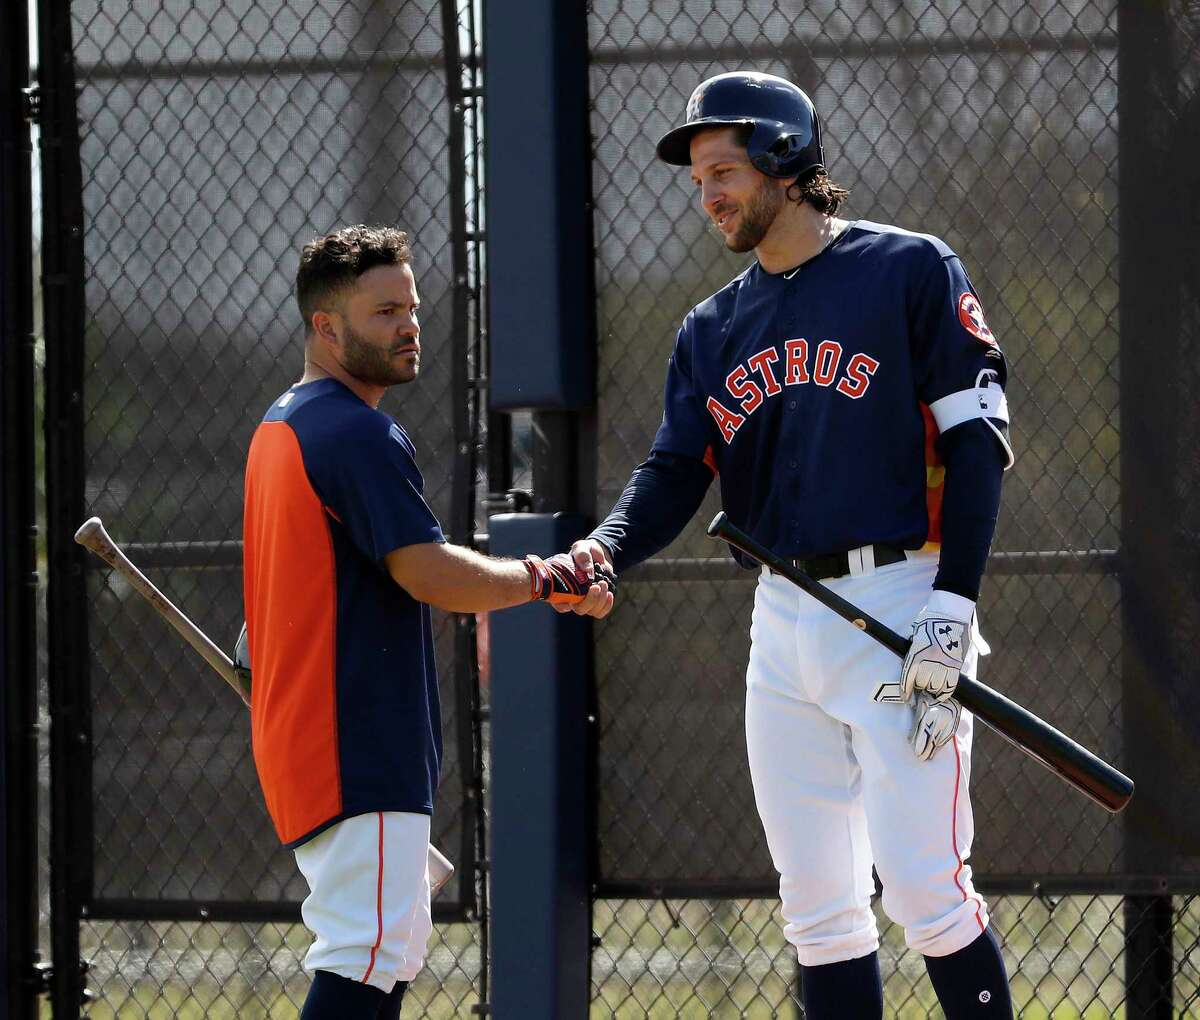 Houston Astros Jake Marisnick (6) shakes hands with Jose Altuve (27) as full squad workouts began during spring training day at The Ballpark of the Palm Beaches, Monday, Feb. 19, 2018, in West Palm Beach .